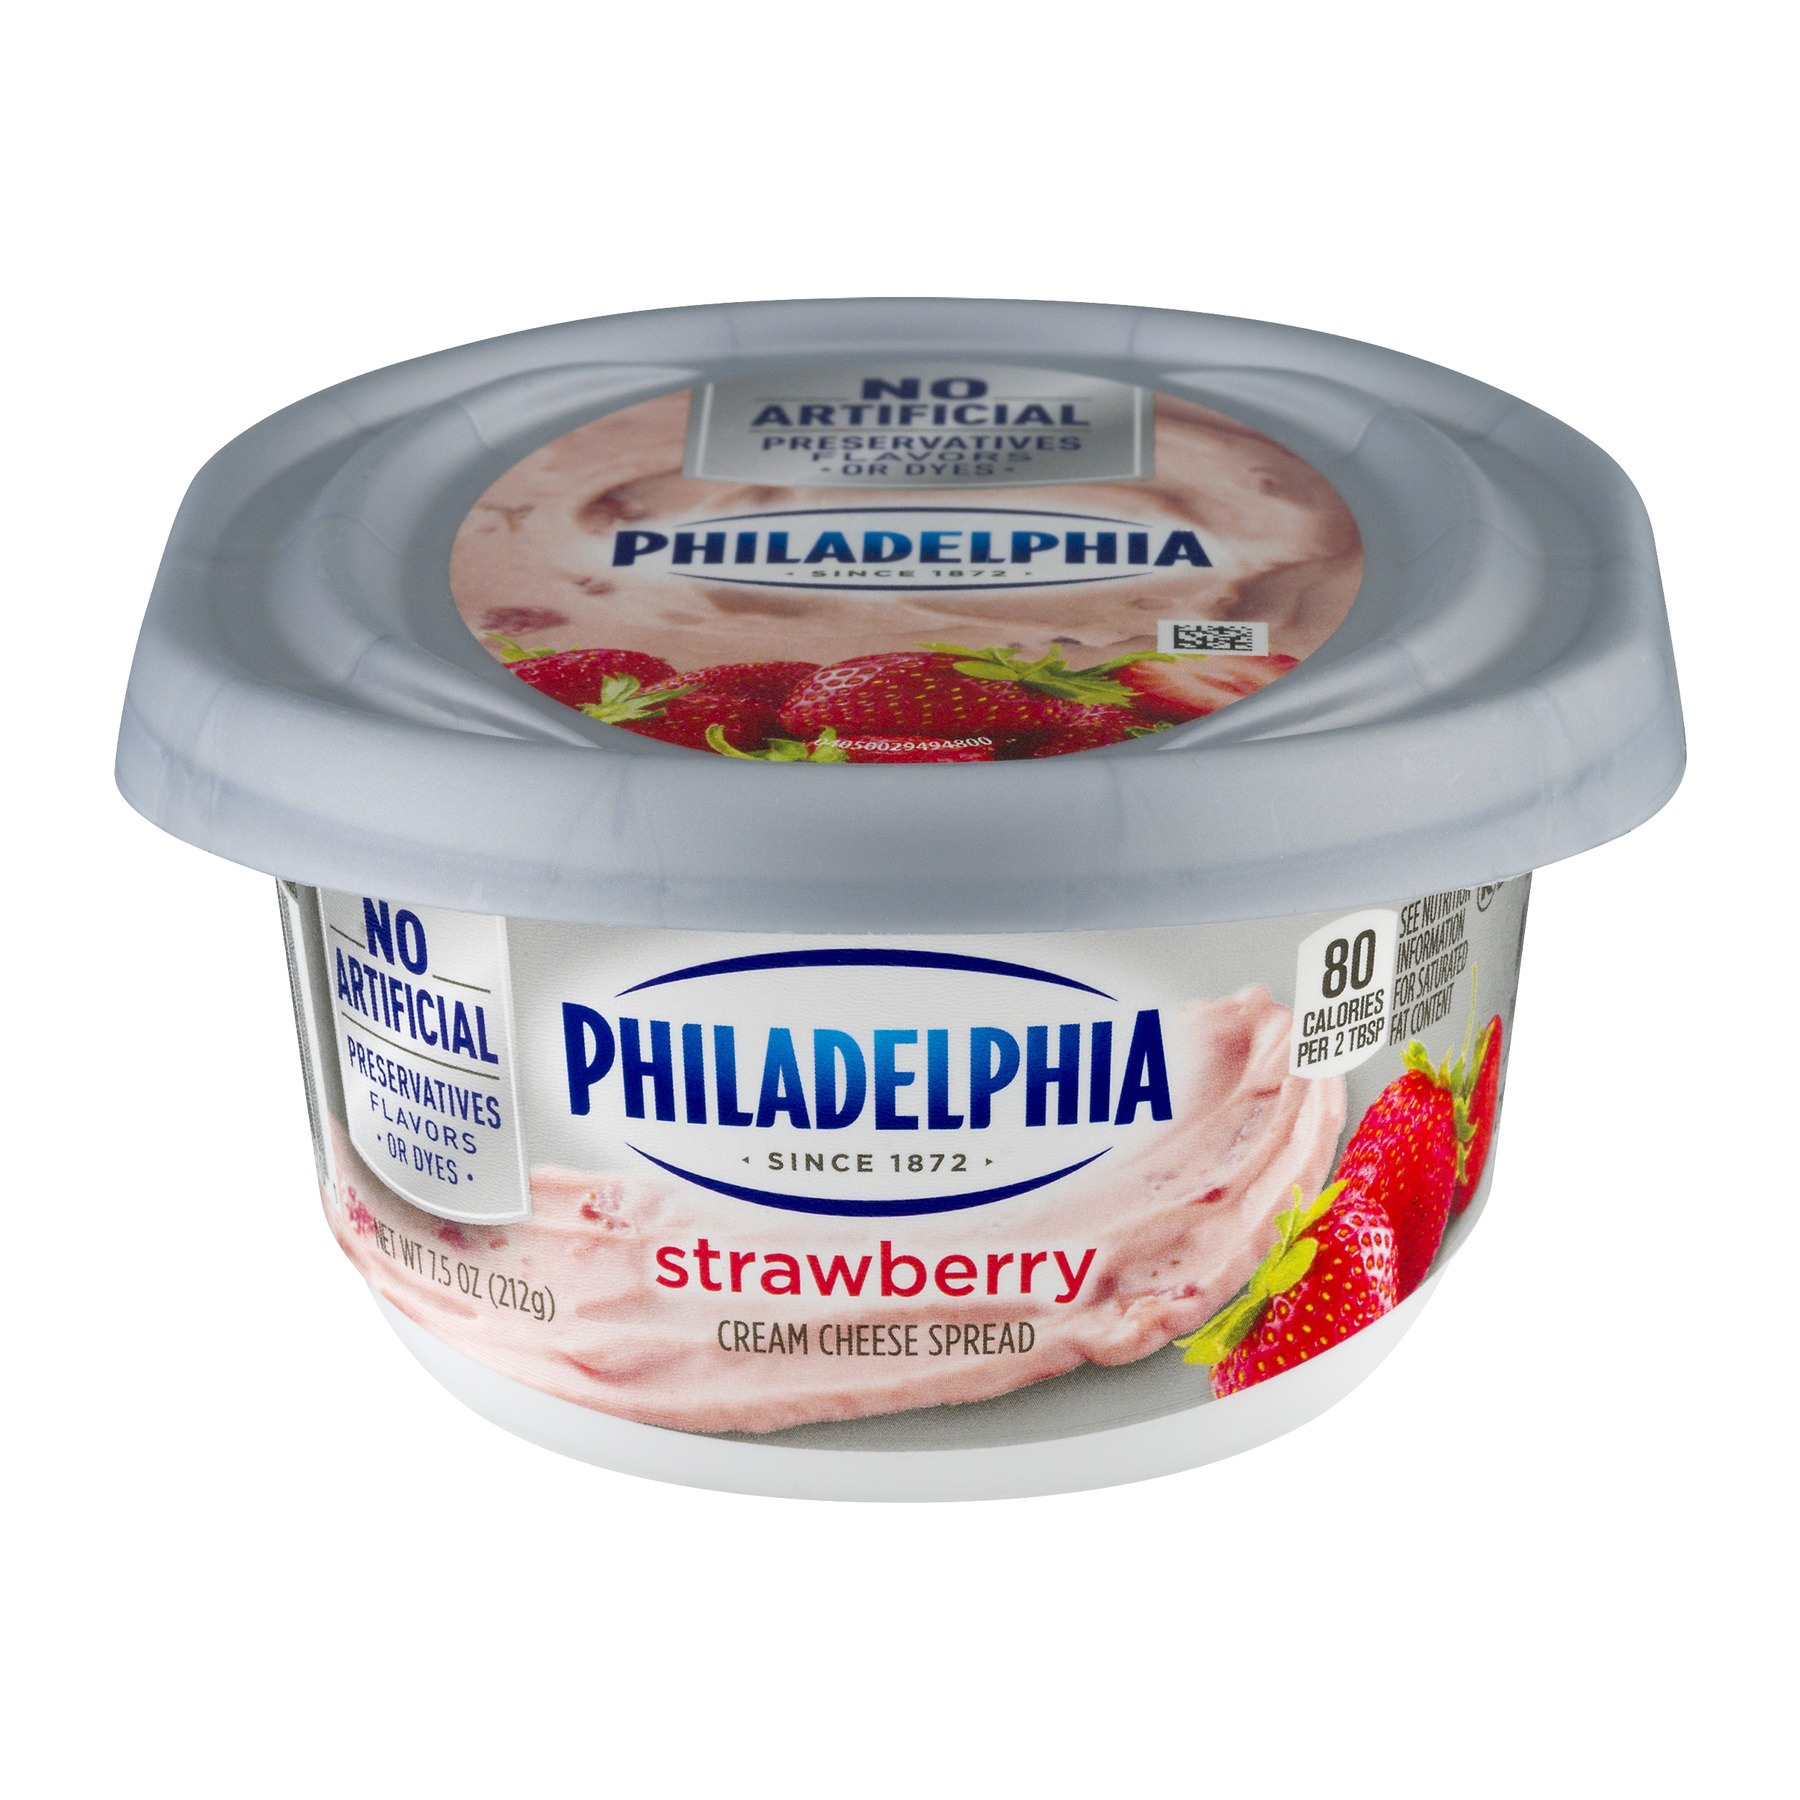 Philadelphia Strawberry Cream Cheese Spread, 7.5 oz